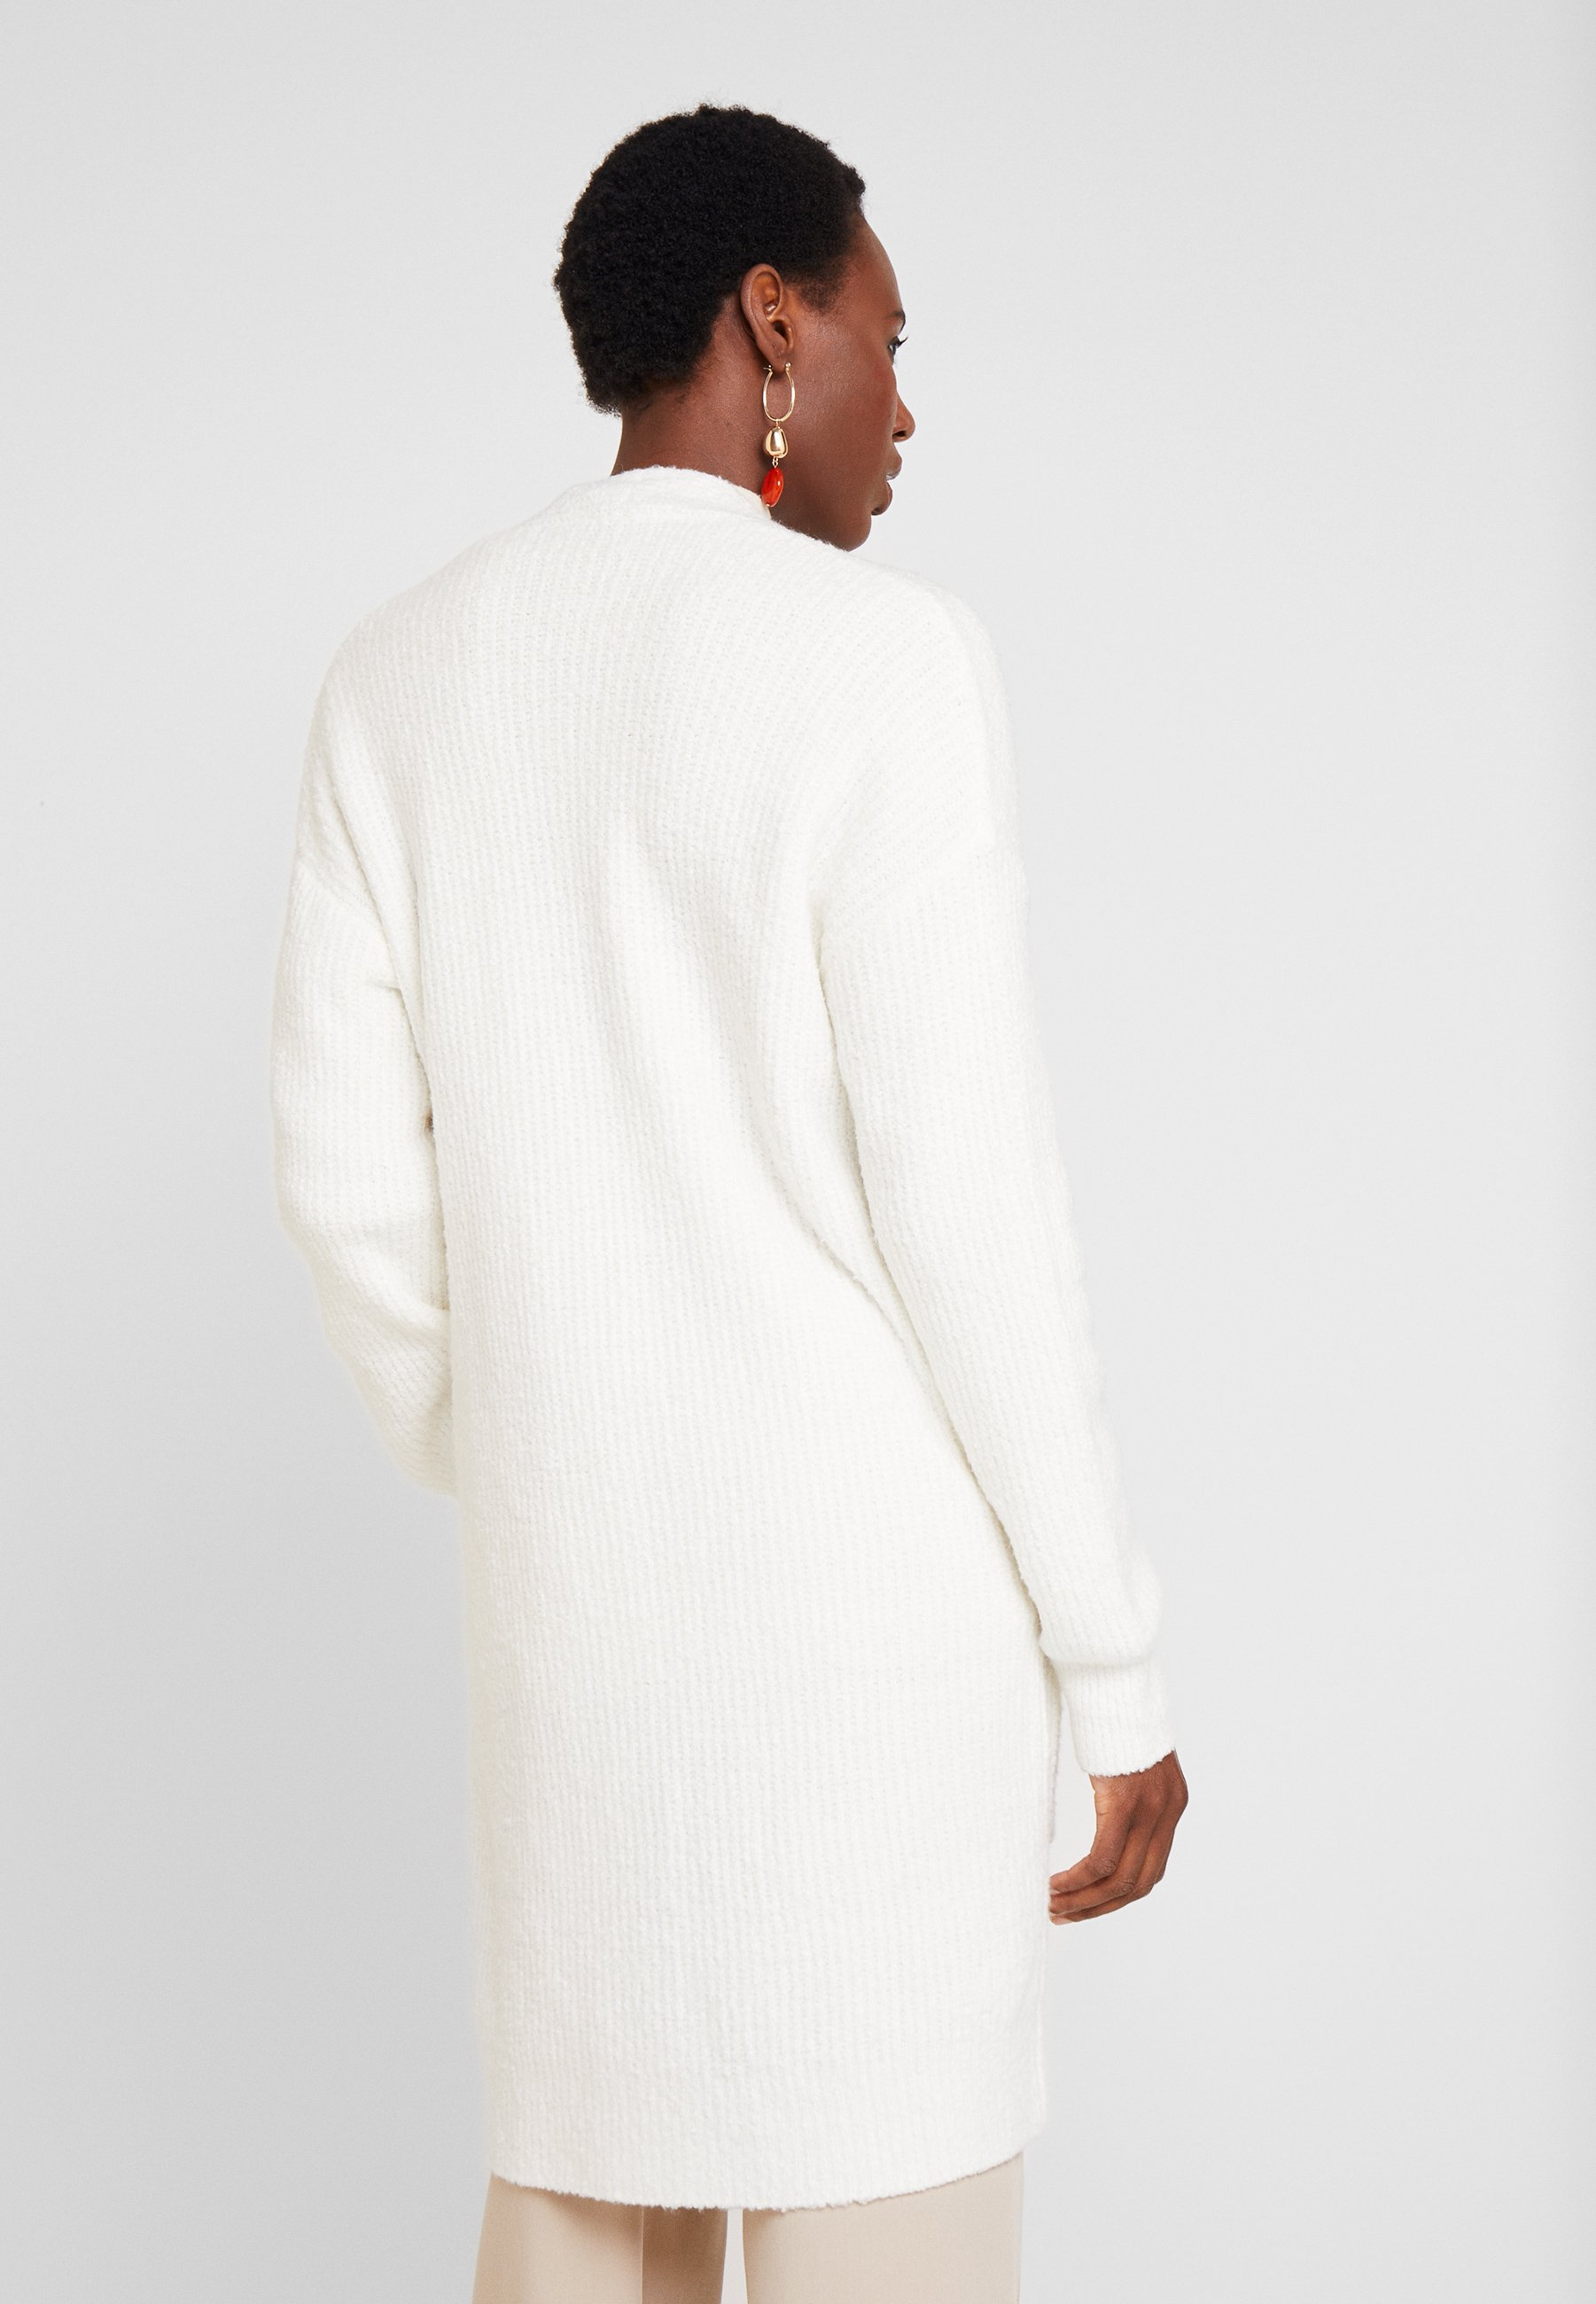 Tom Tailor Cardigan - Strickjacke Whisper White Black Friday